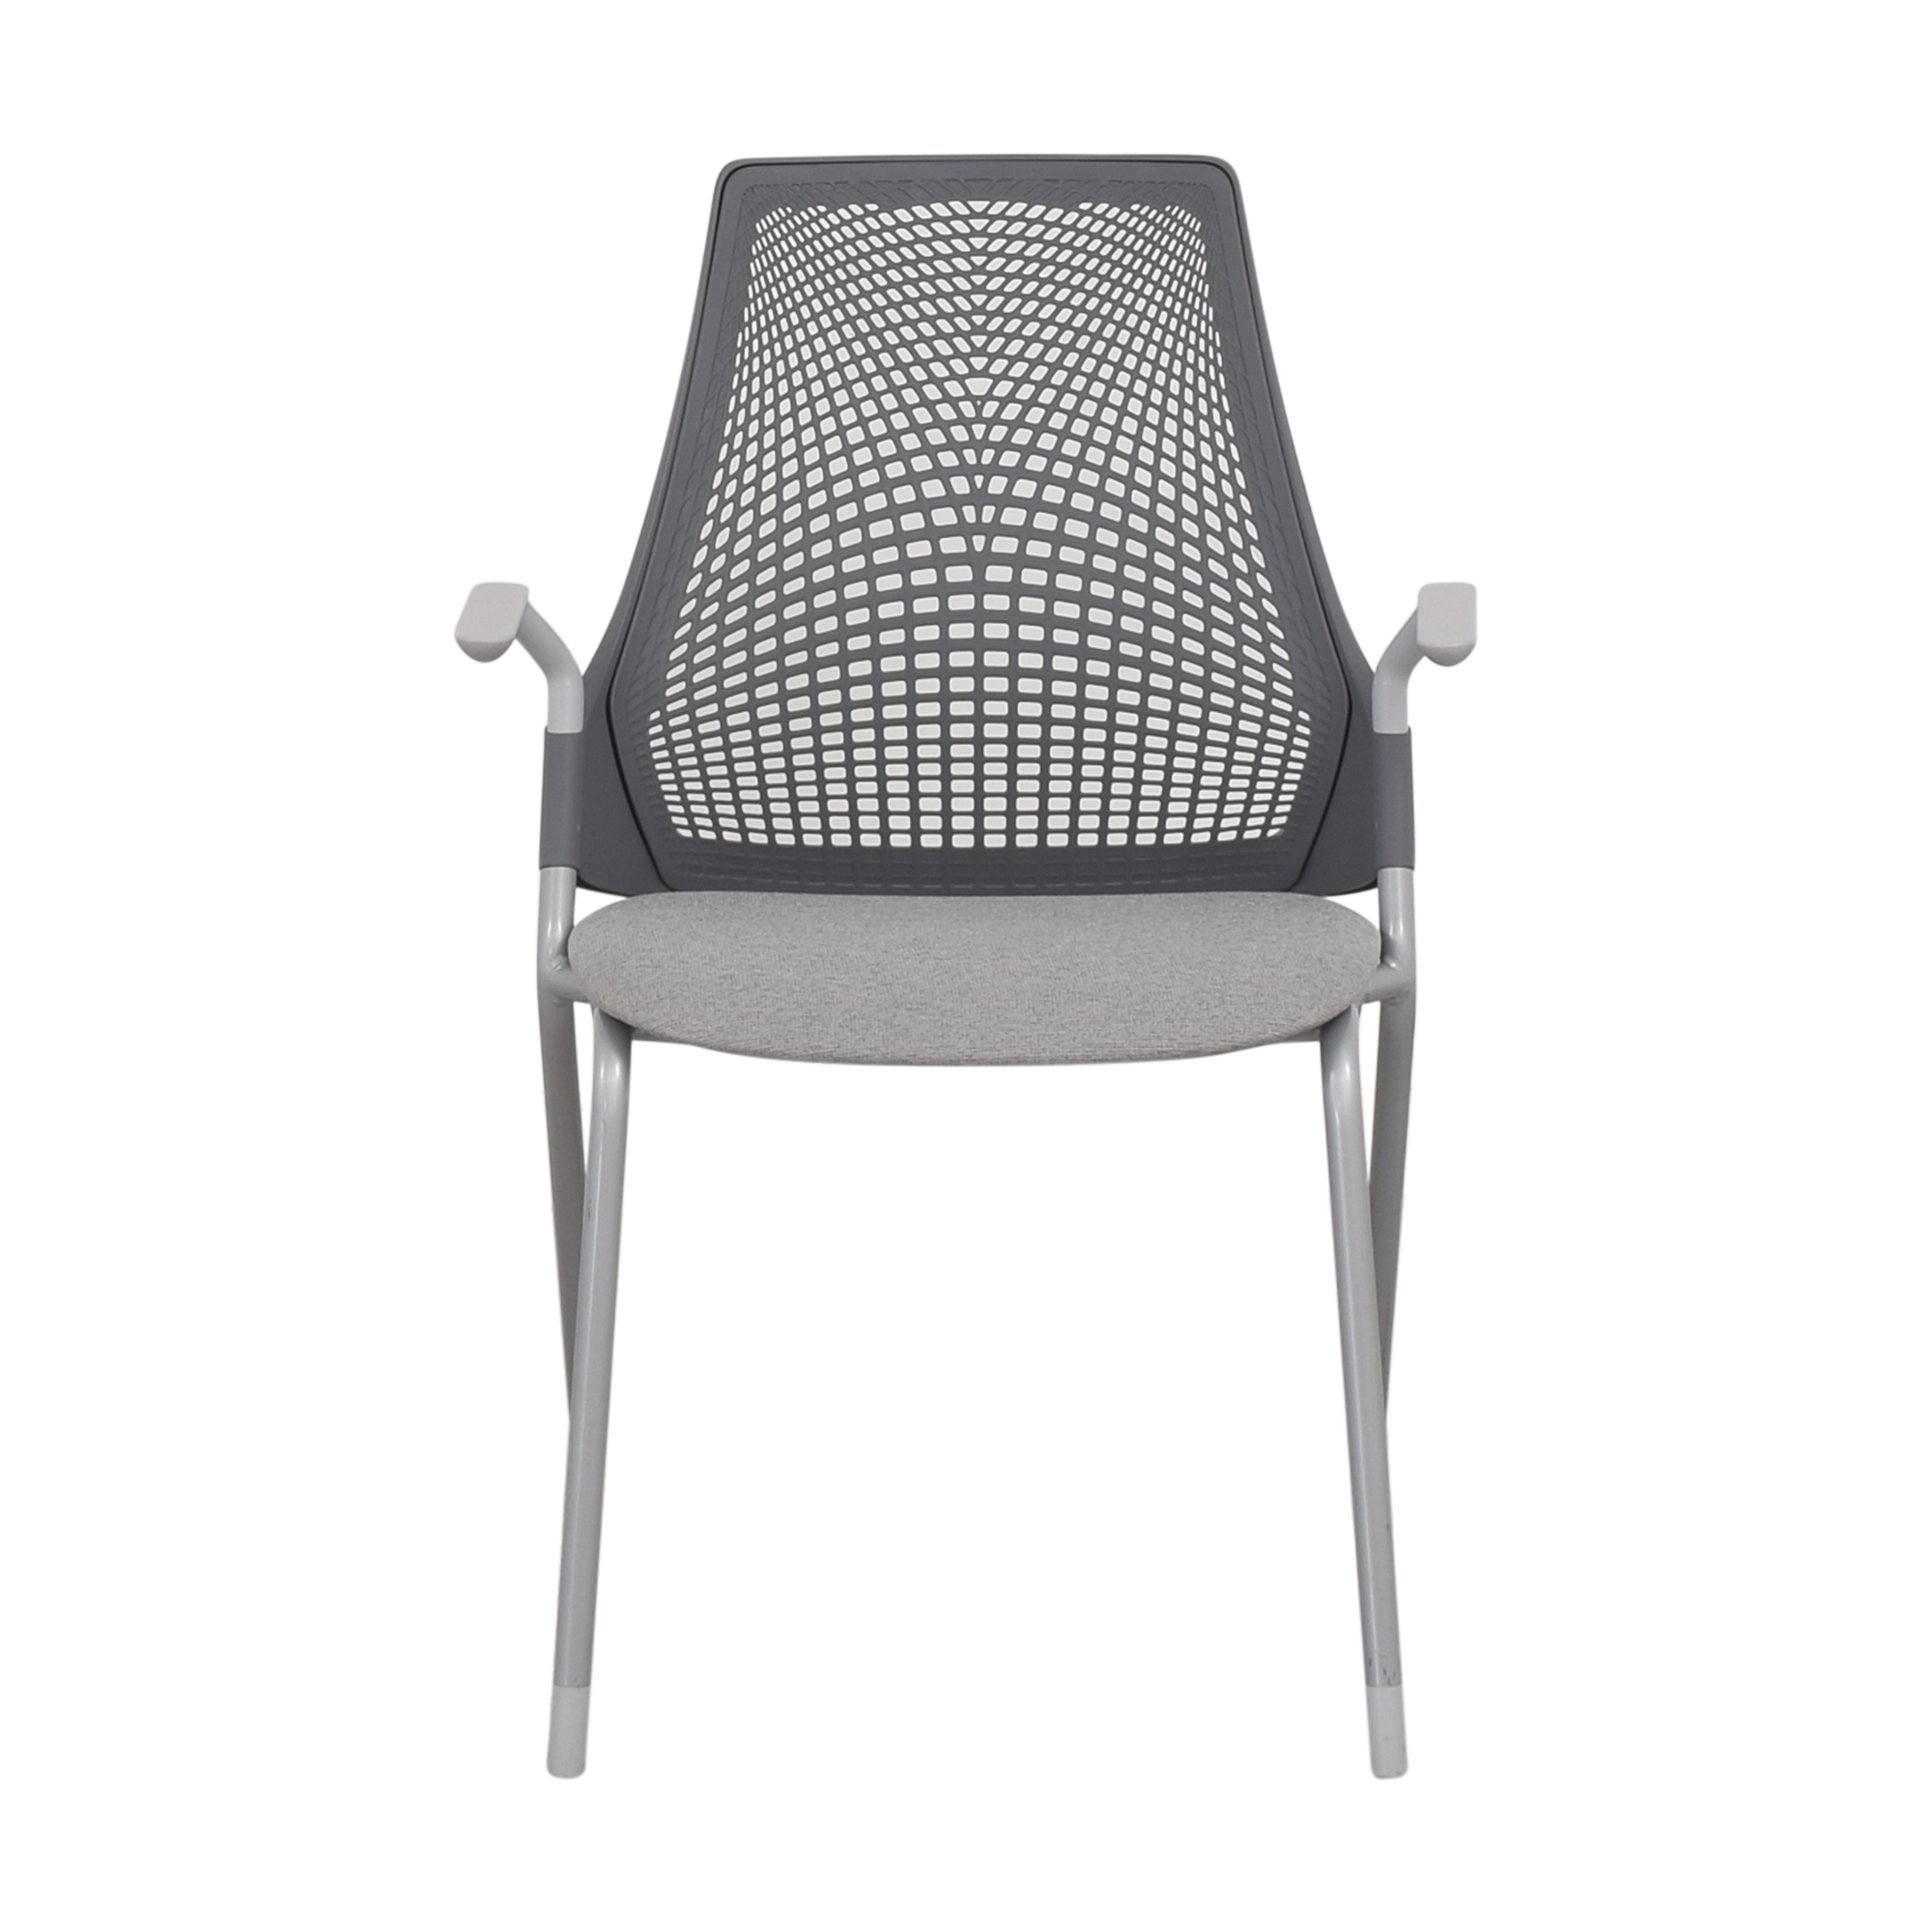 Herman Miller Herman Miller Sayl Side Chair pa